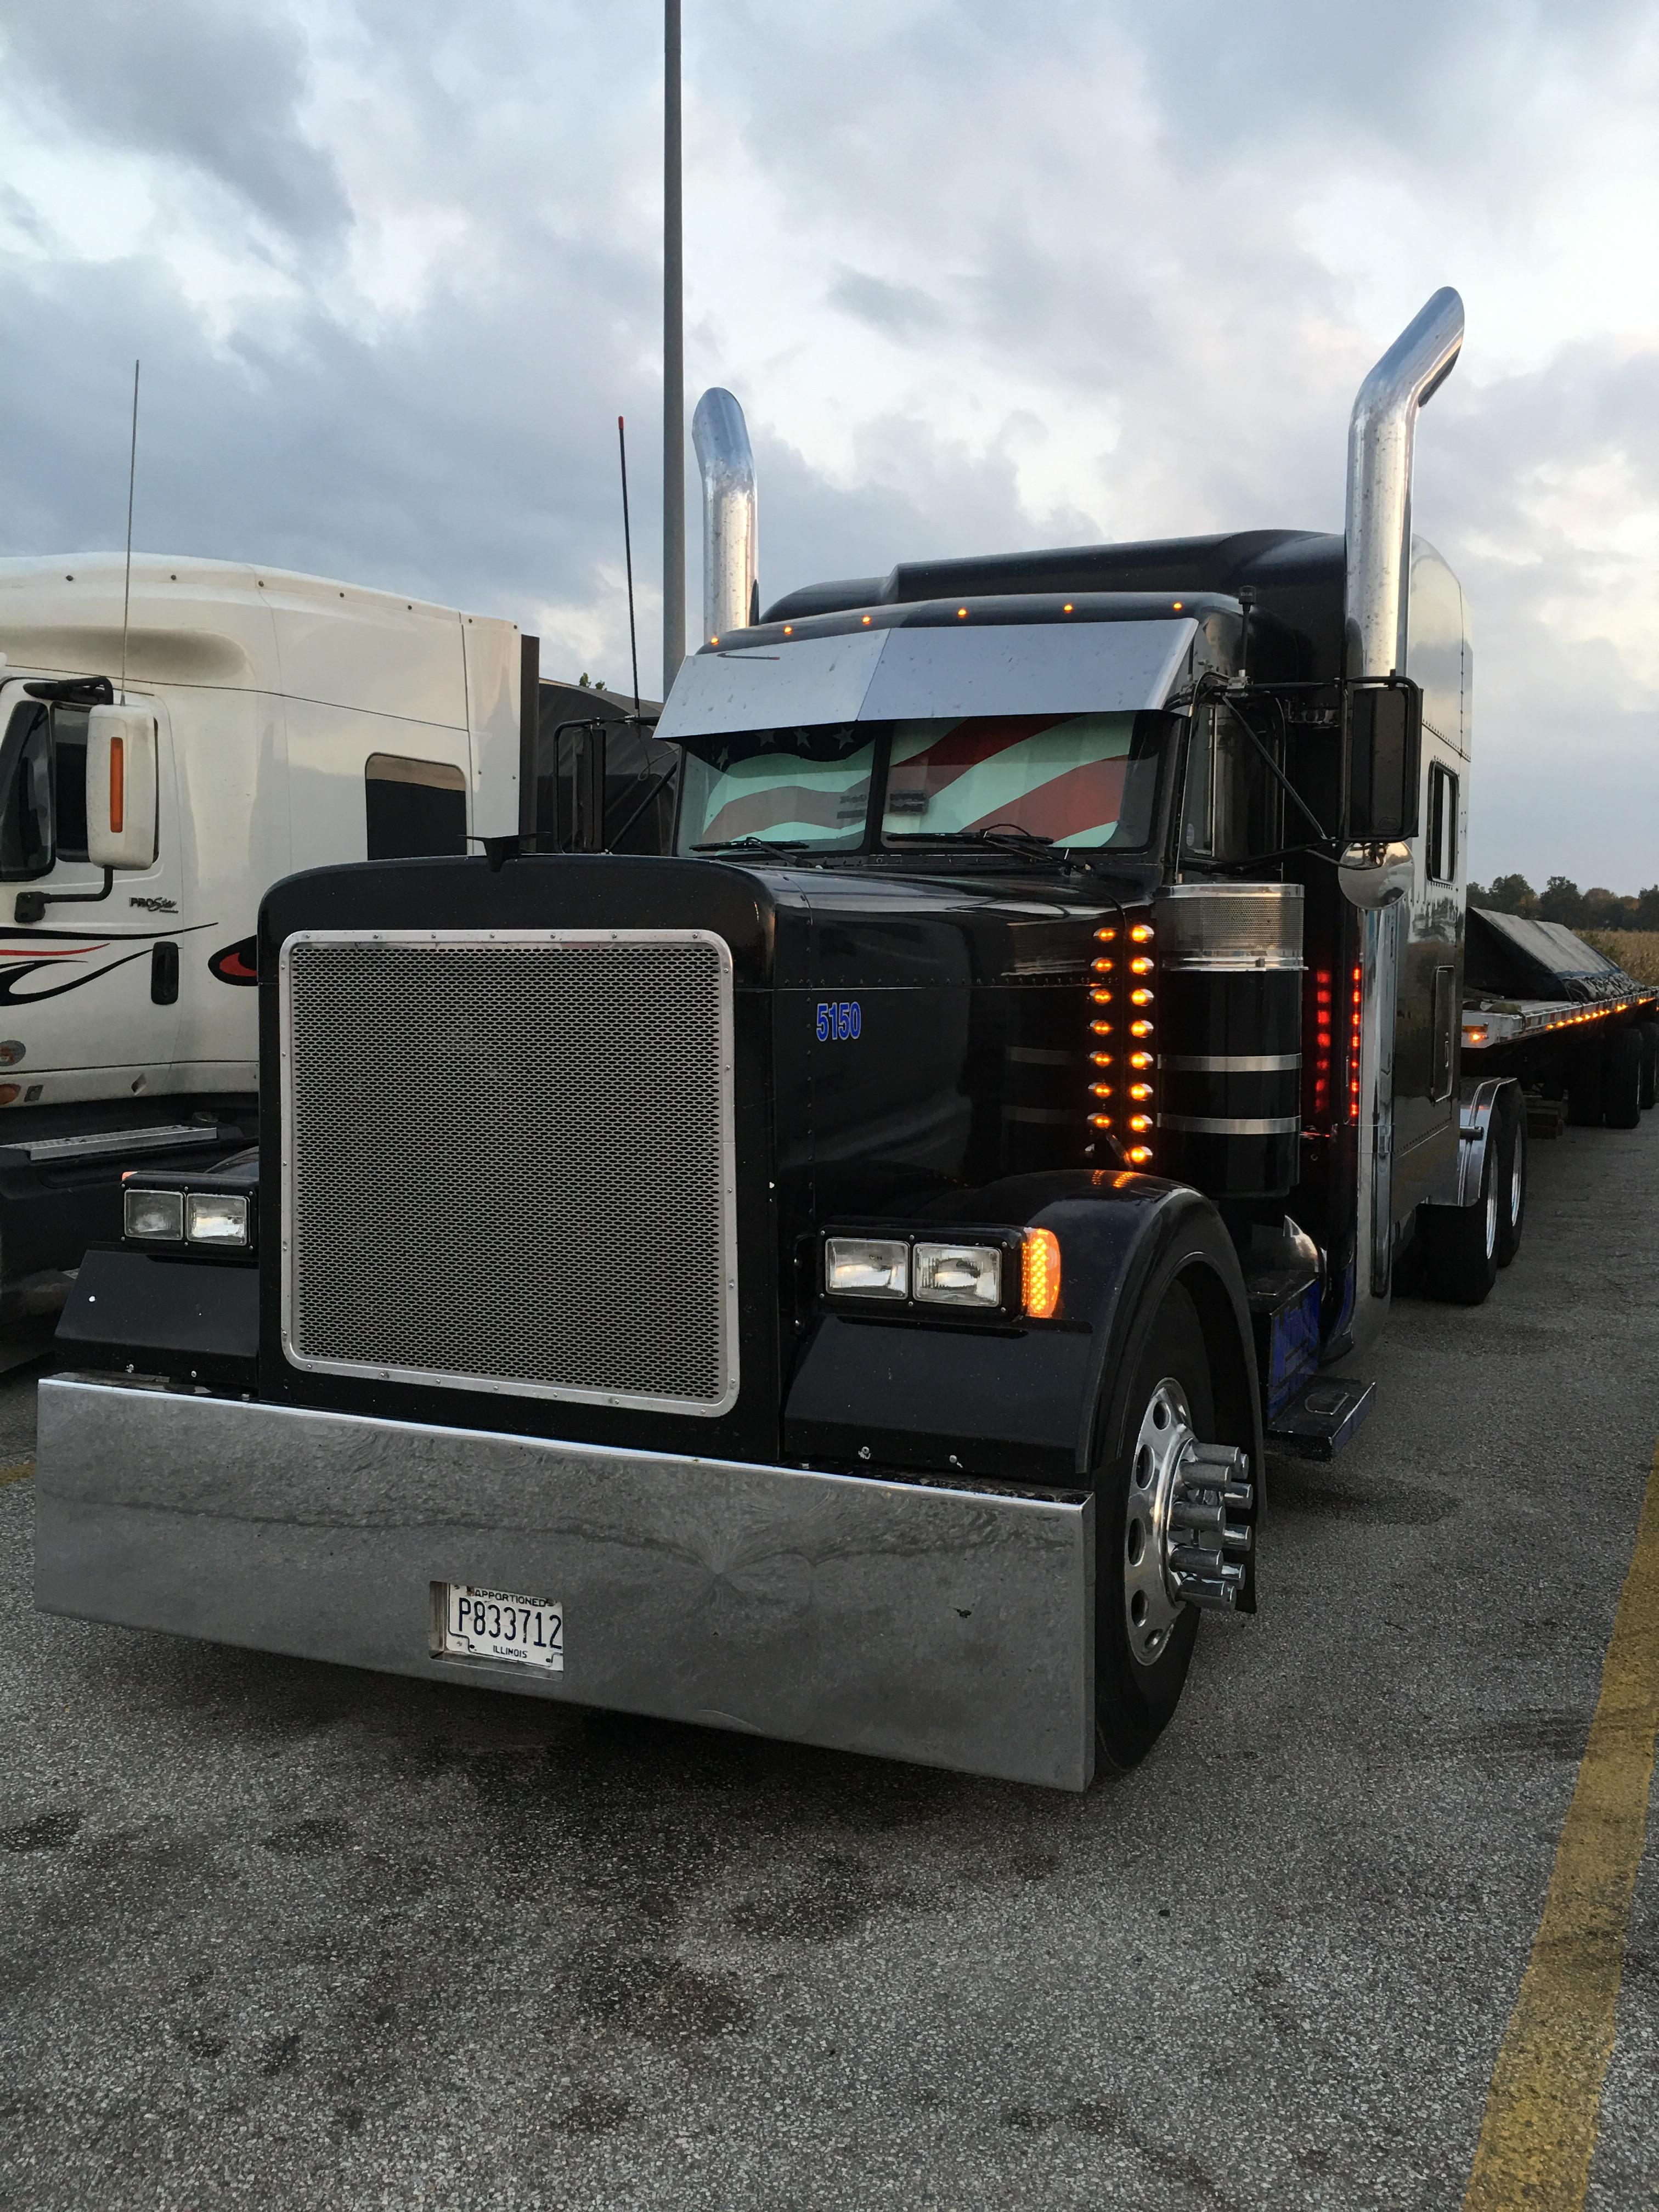 Keith R's big rig, first picture.